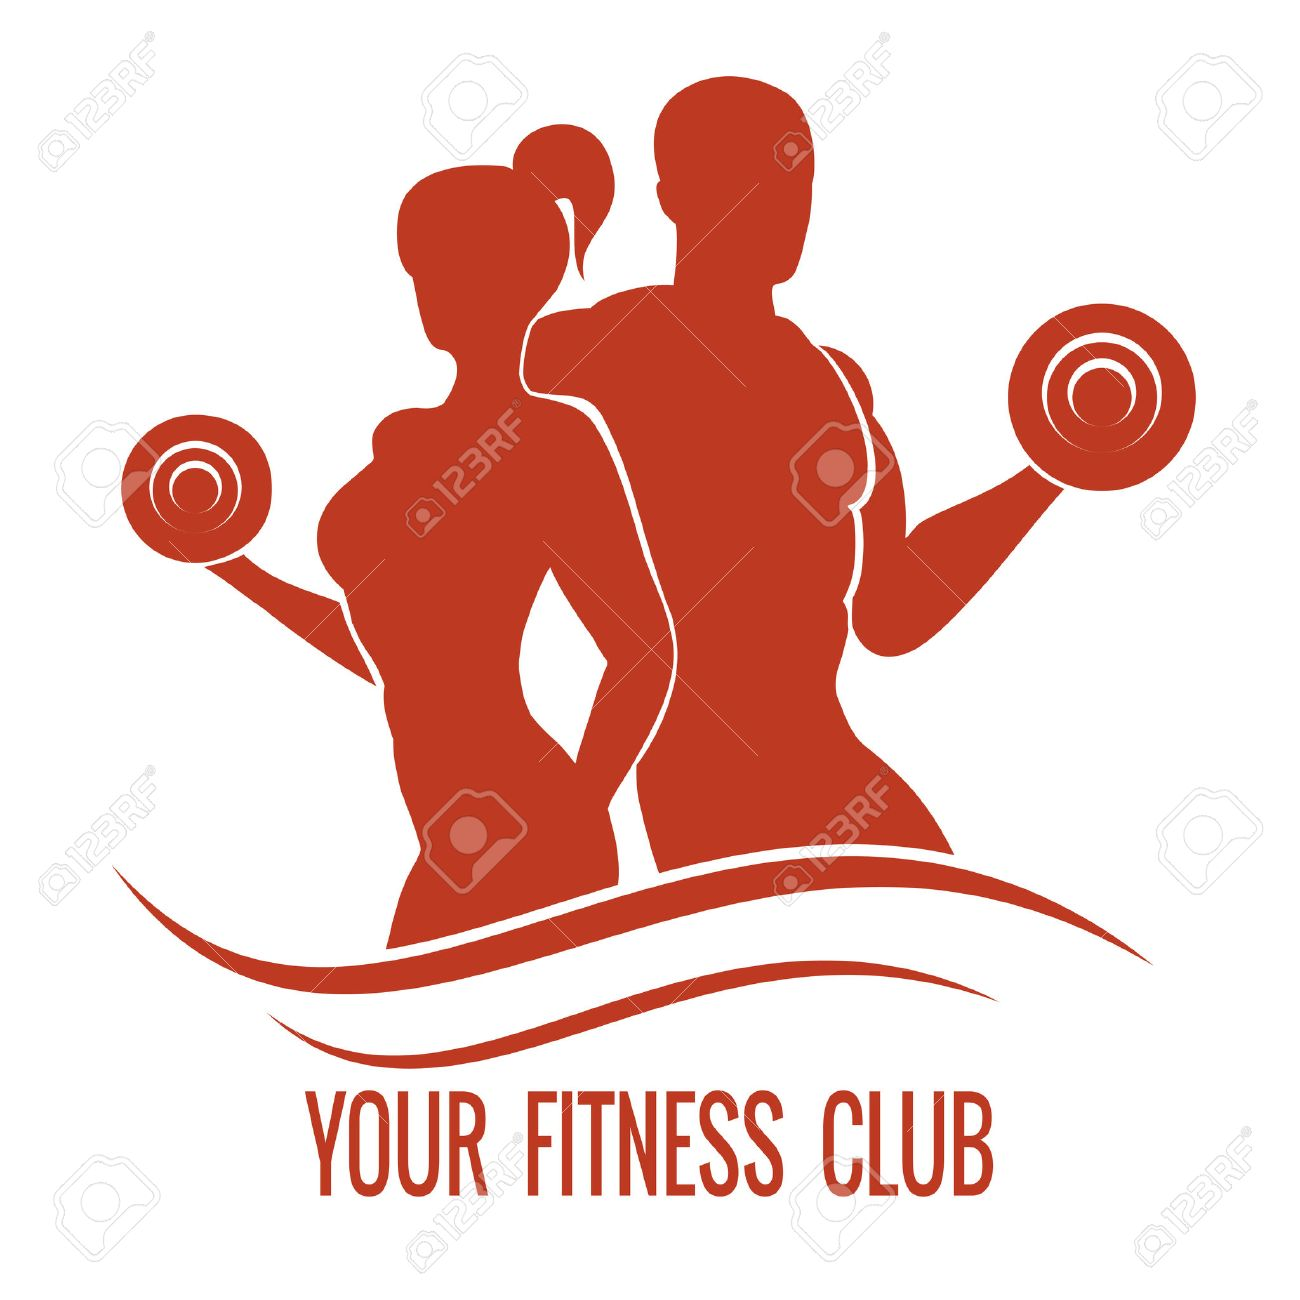 Fitness Logo With Muscled Man And Woman Silhouettes. Man And ... for Fitness Logo Vector Free Download  570bof